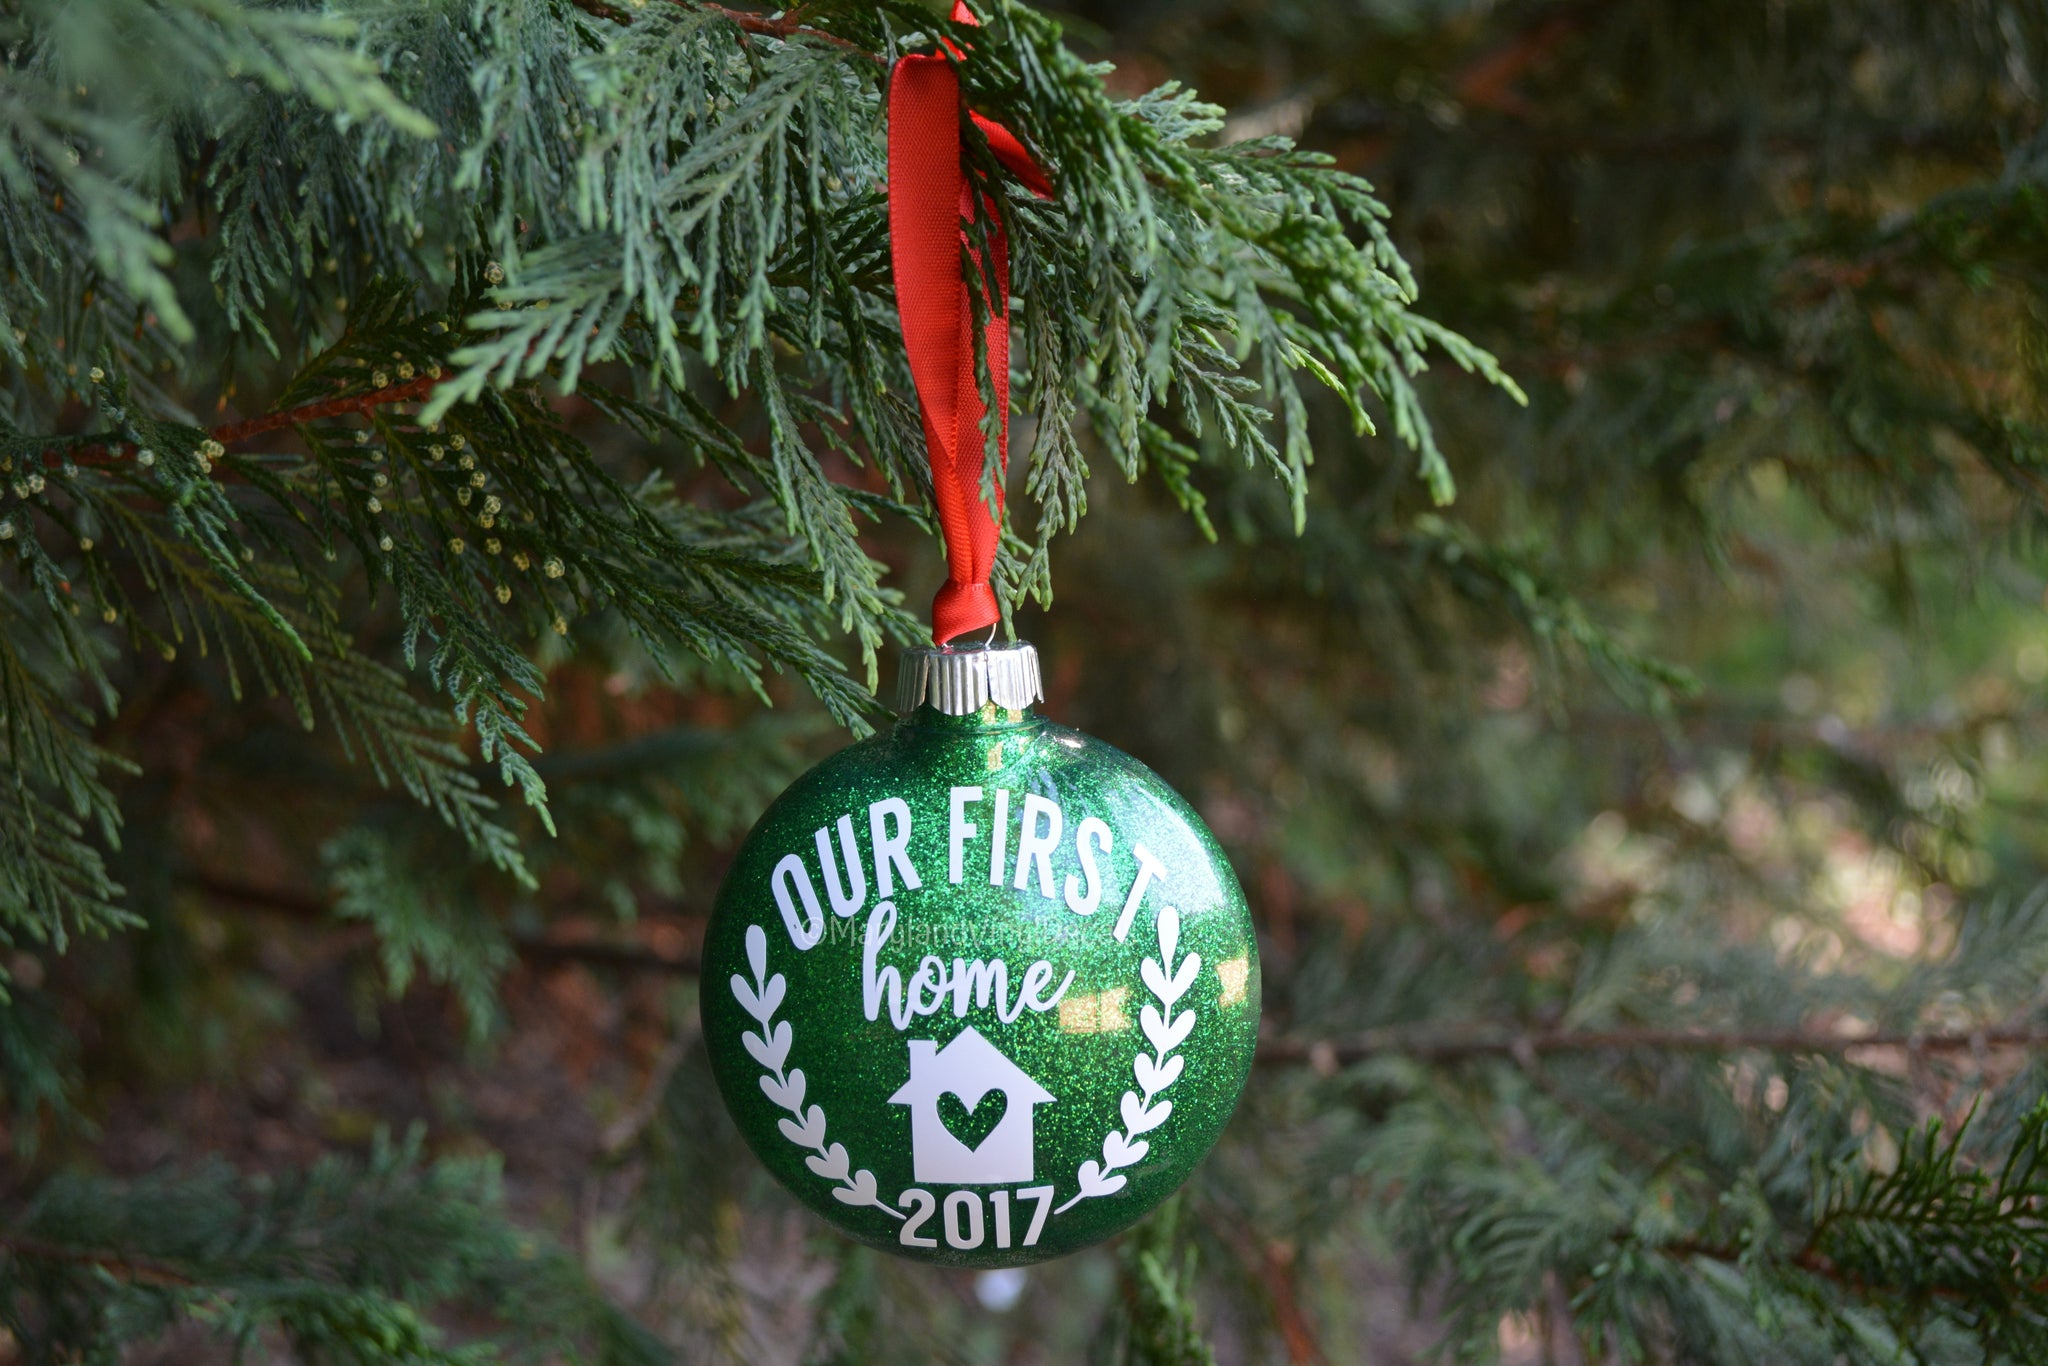 Our First Home Christmas Ornament.Our First Home Christmas Ornament